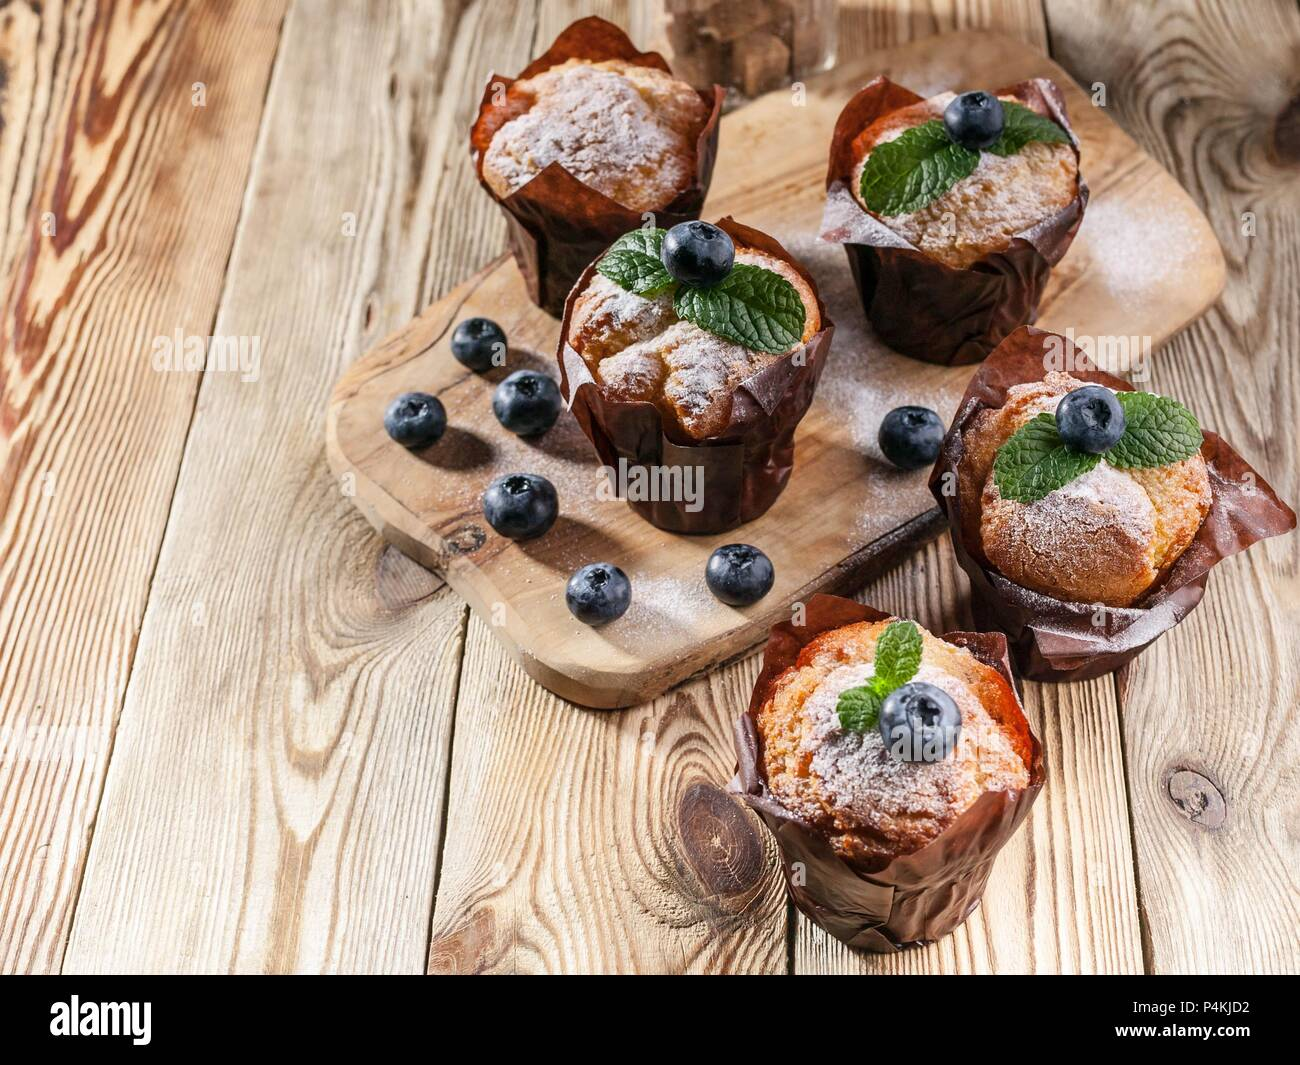 Muffins with blueberries on a wooden background. homemade baking - Stock Image